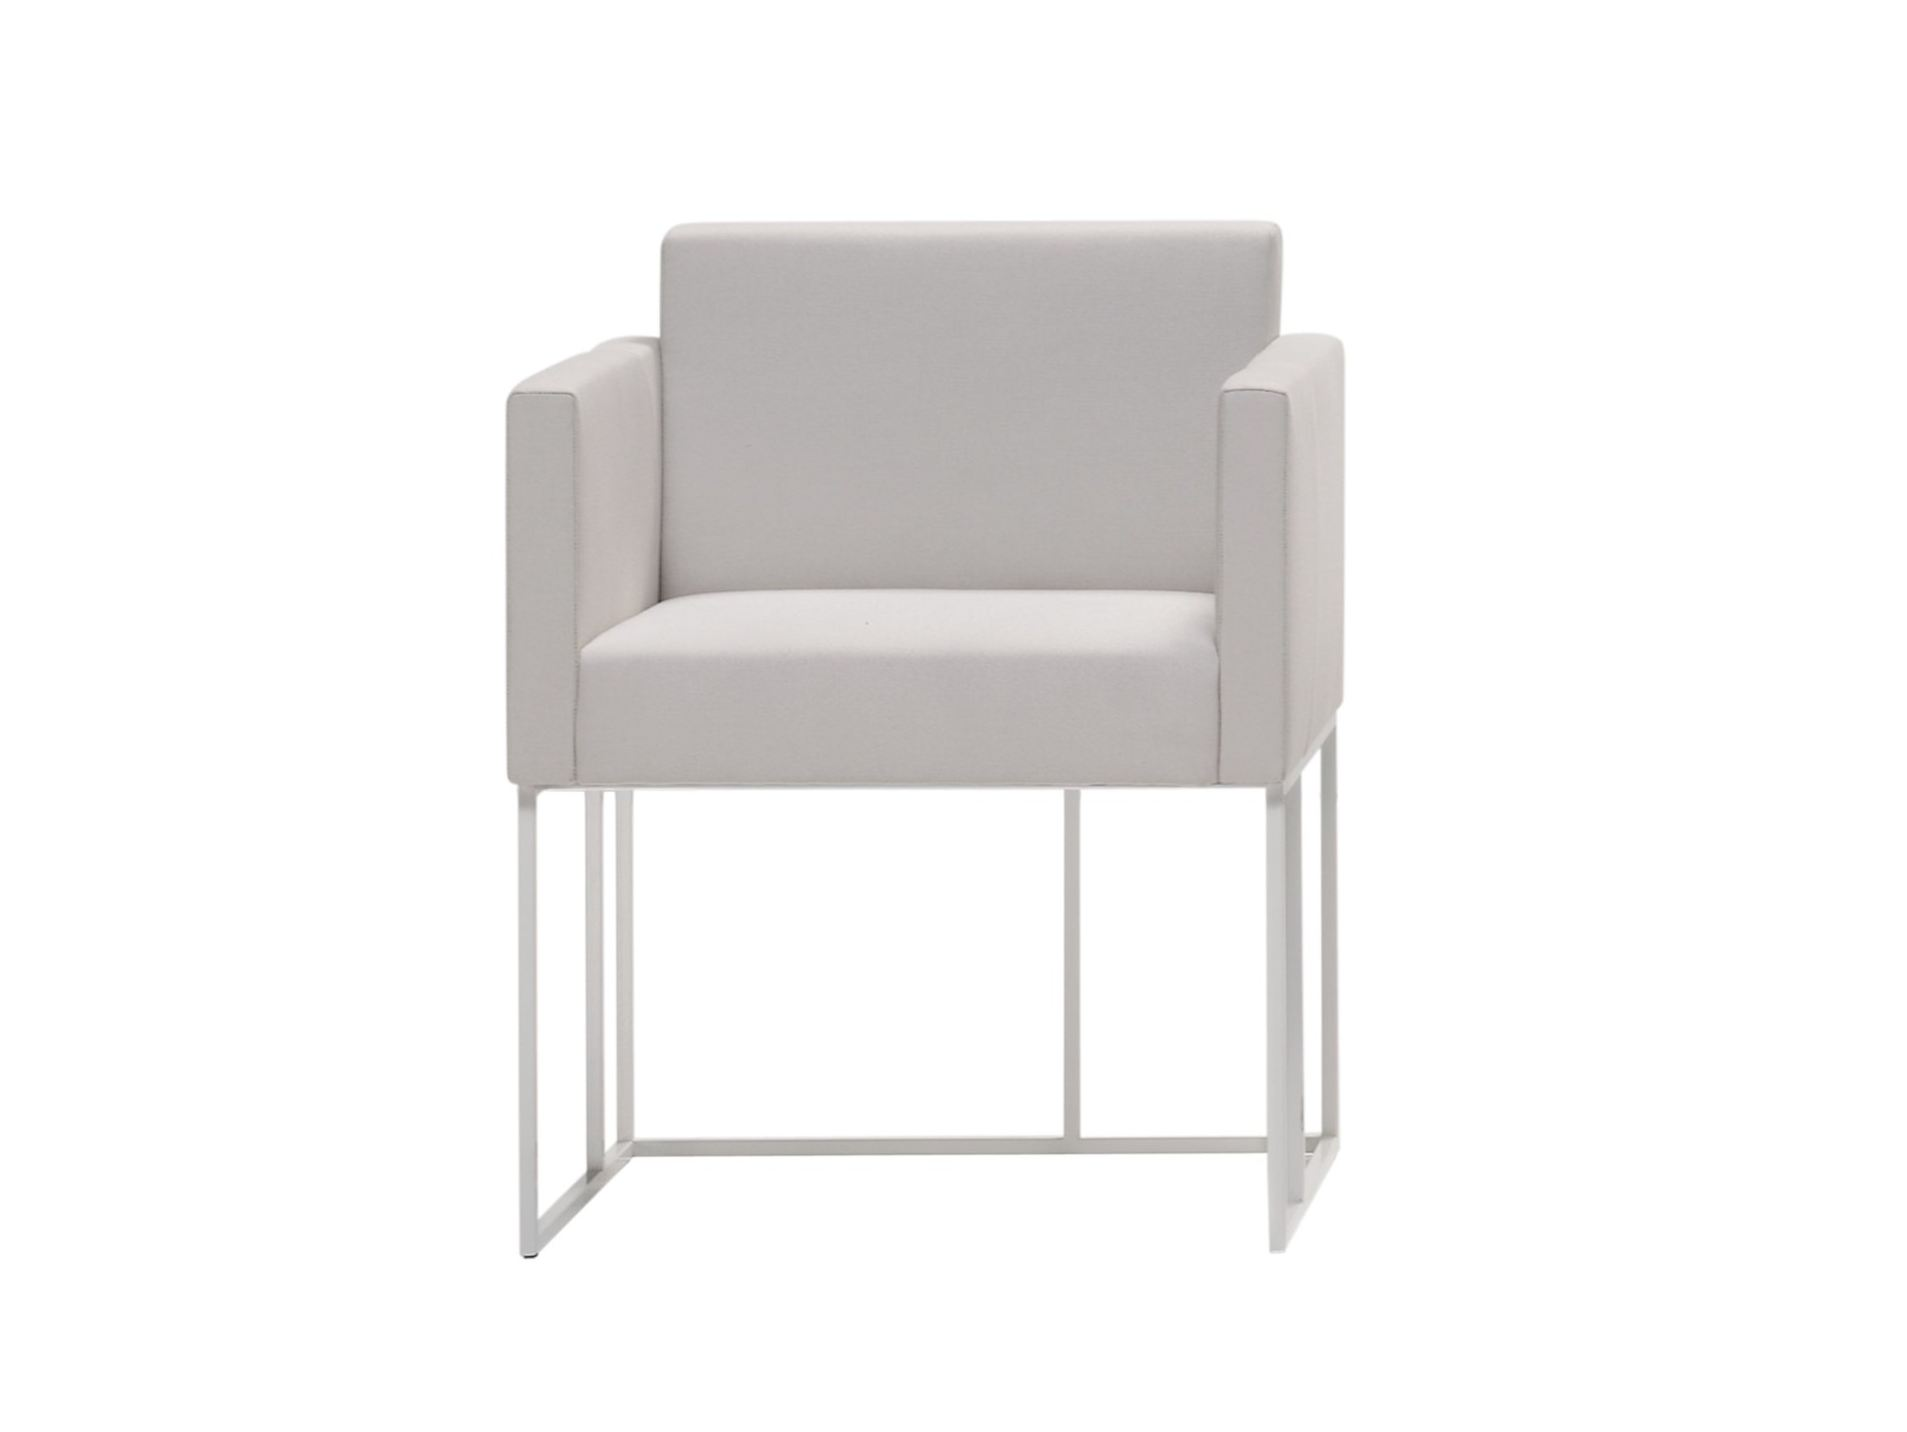 Elements xs sill n peque o by inclass mobles dise o ram n - Sillon orejero pequeno ...